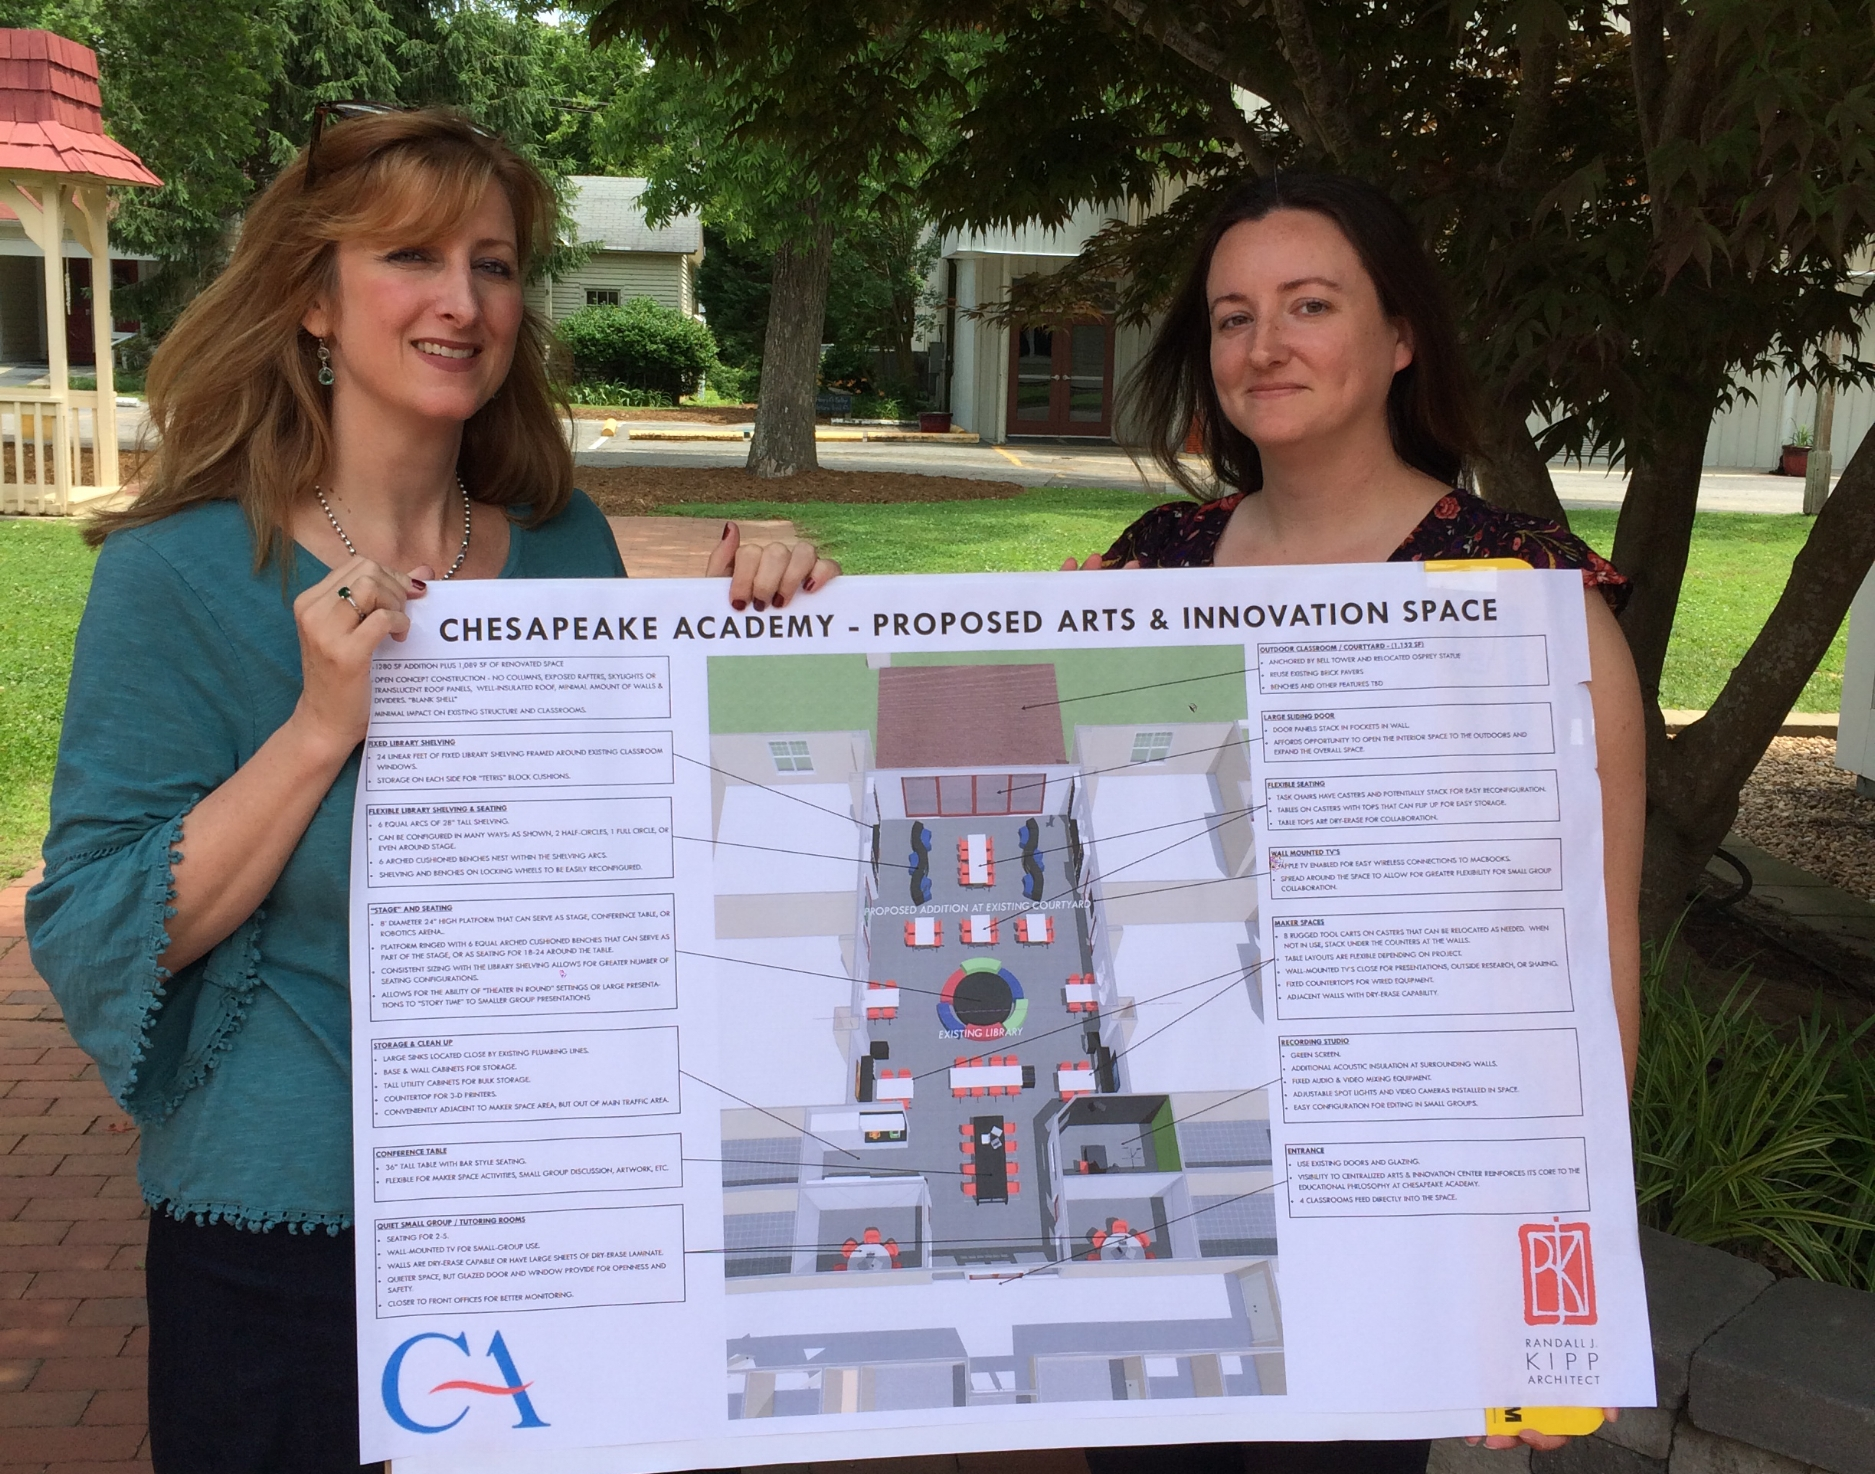 Chesapeake Academy's Julianne Duvall, Head of School, and Kimberly Dynia, Instructional Technology Coordinator, display plans for the proposed Arts & Innovation Space.